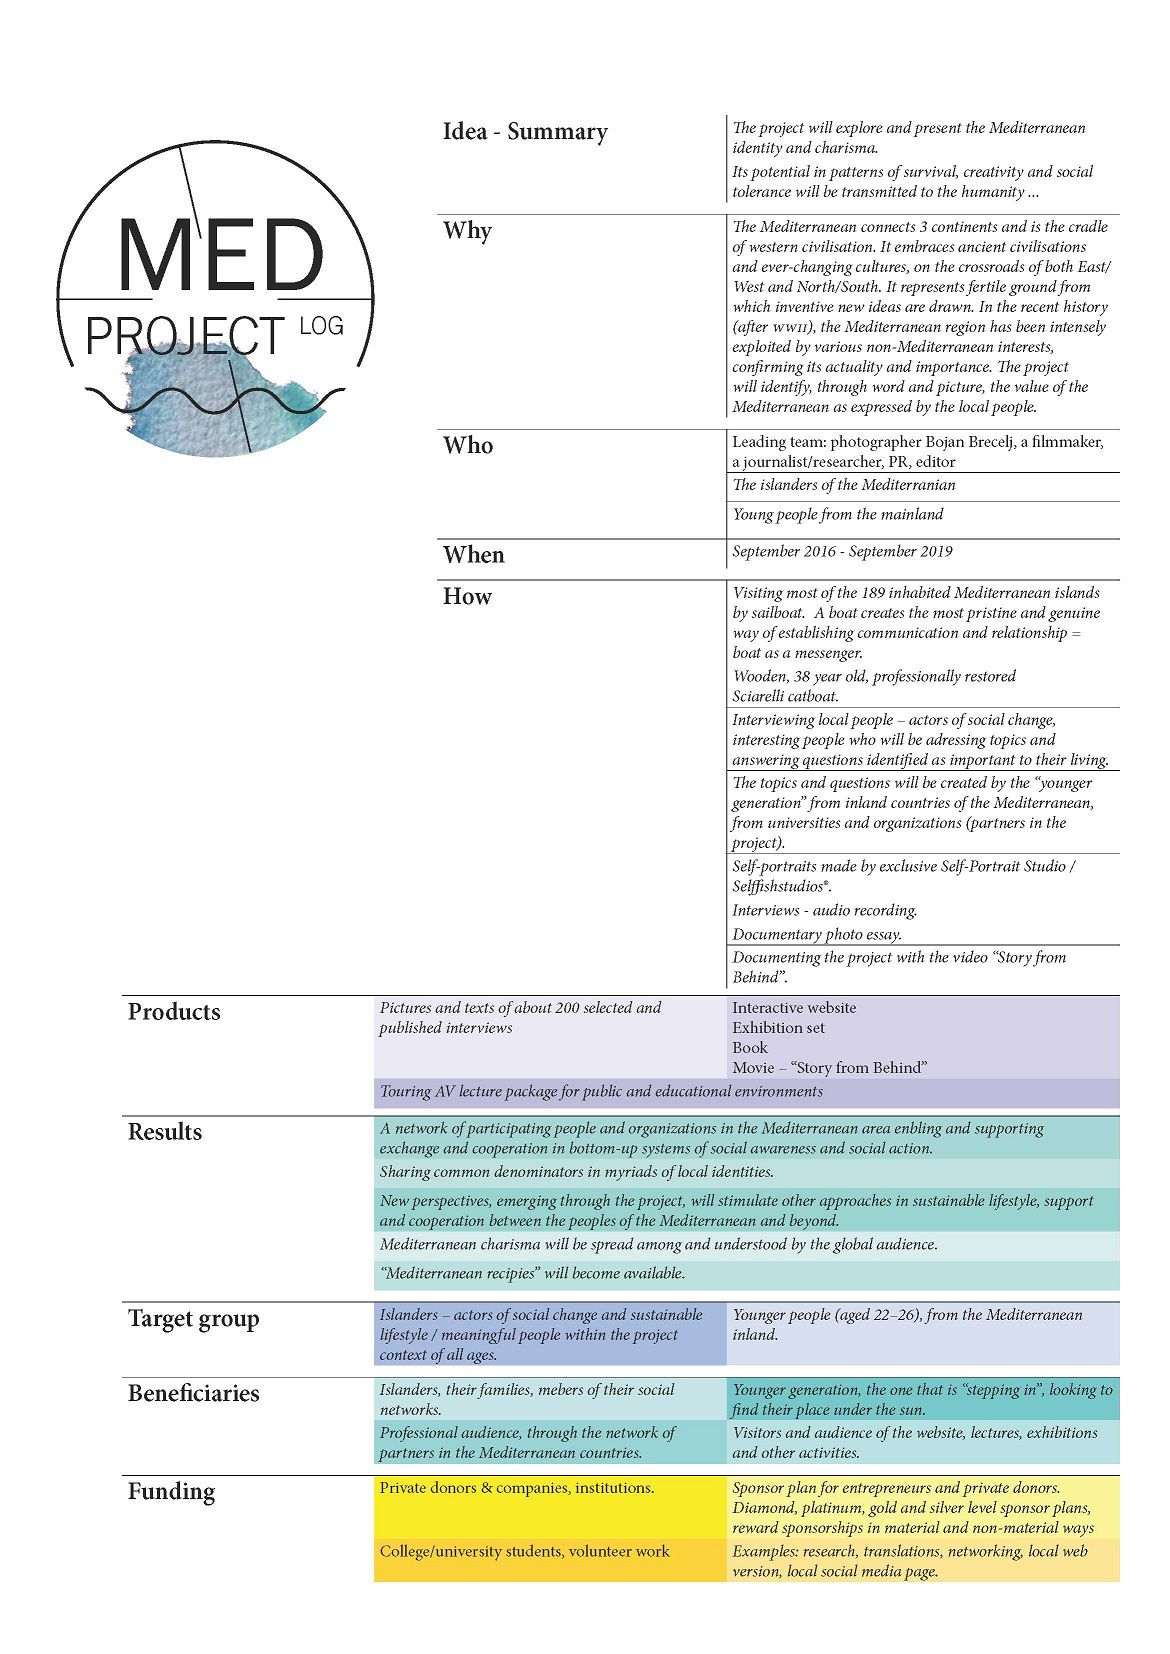 med-land-project-about